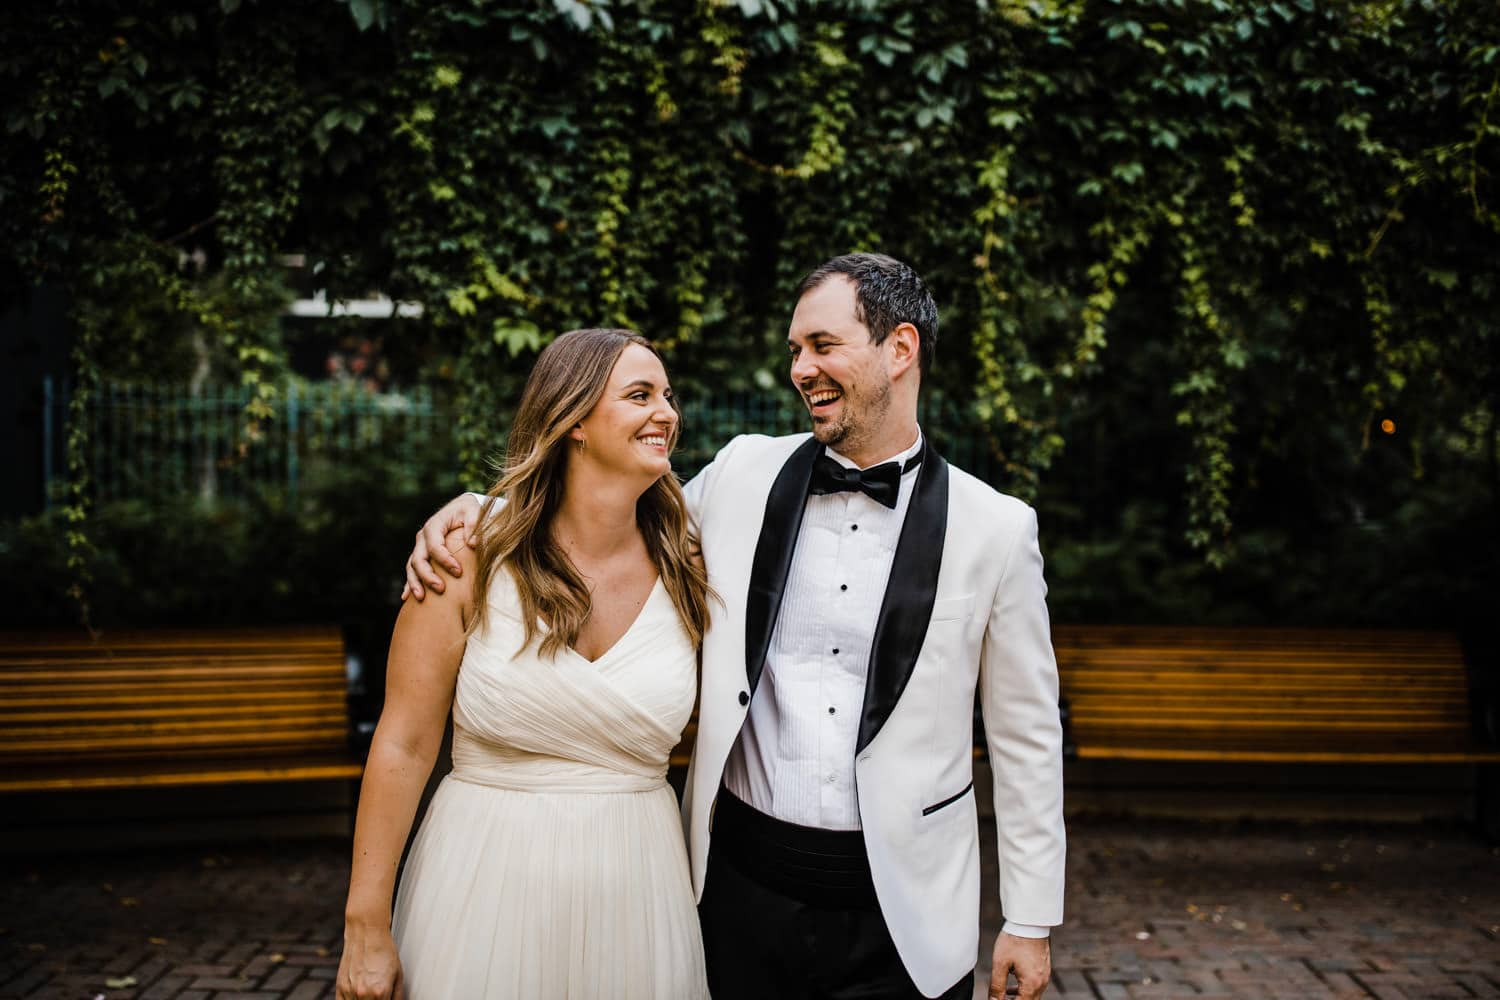 couple laugh together - summer wedding at the sussex contemporary